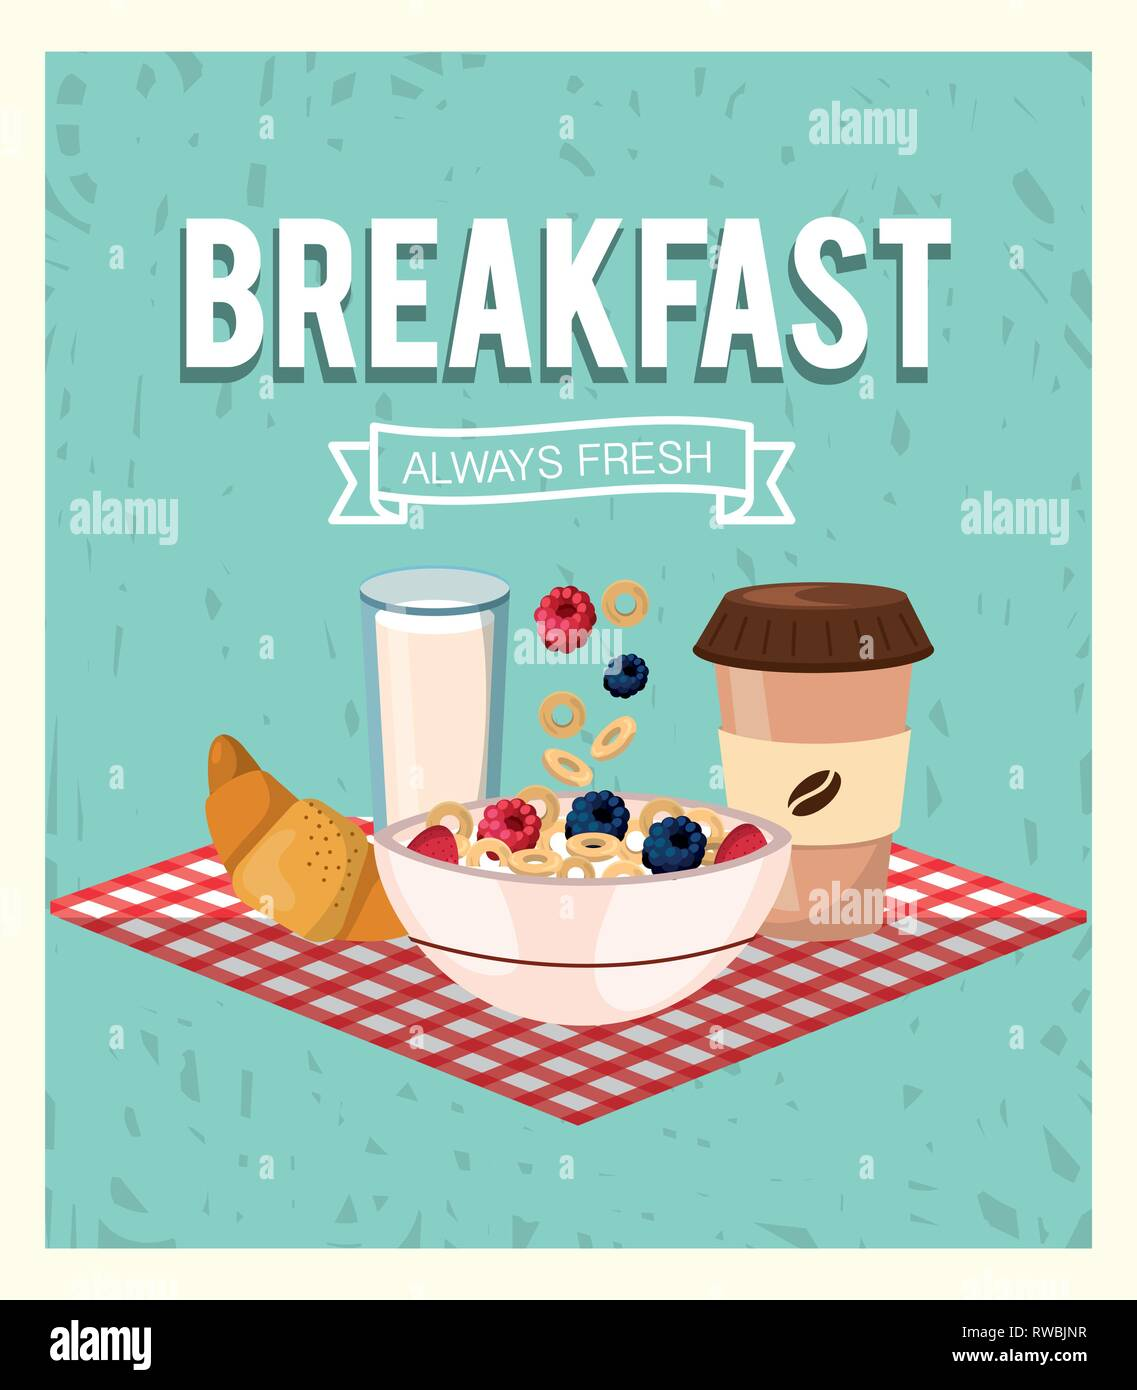 breakfast and cereal with strawberries and blackberries fruits - Stock Image